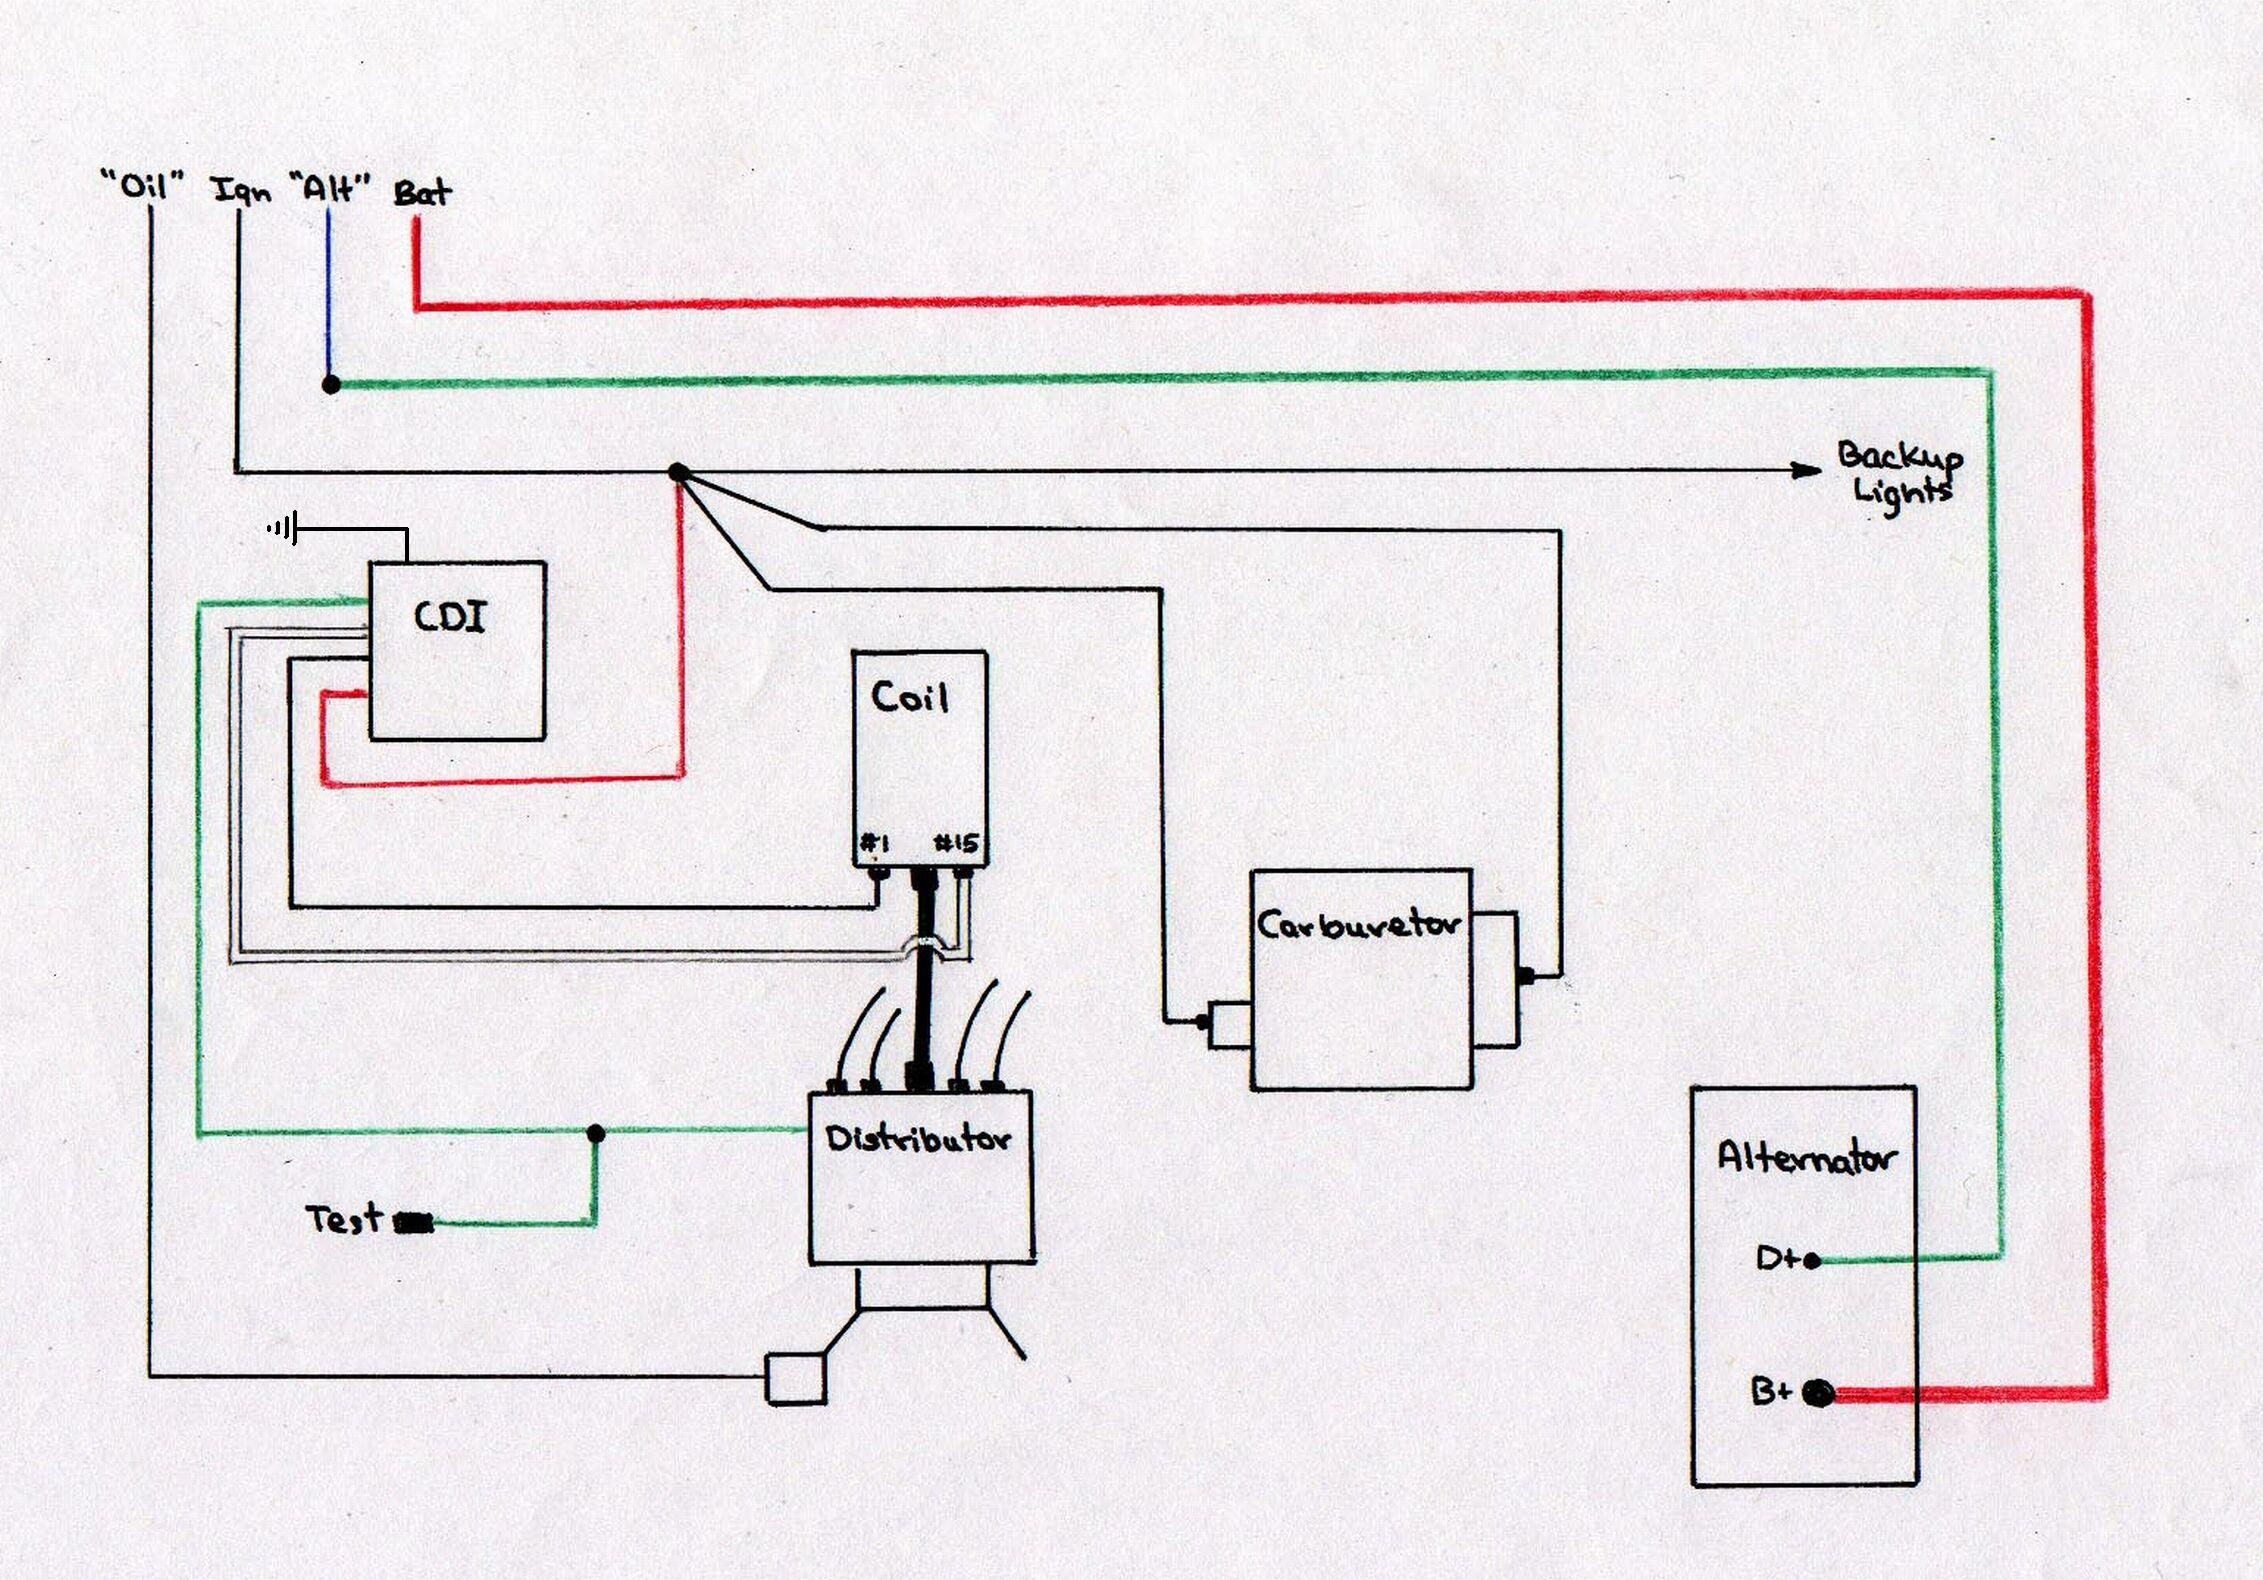 chinese atv cdi wiring diagram SktjoUH?resize%5Cu003d665%2C464 linhai 300 4x4 wiring diagram schematic diagrams